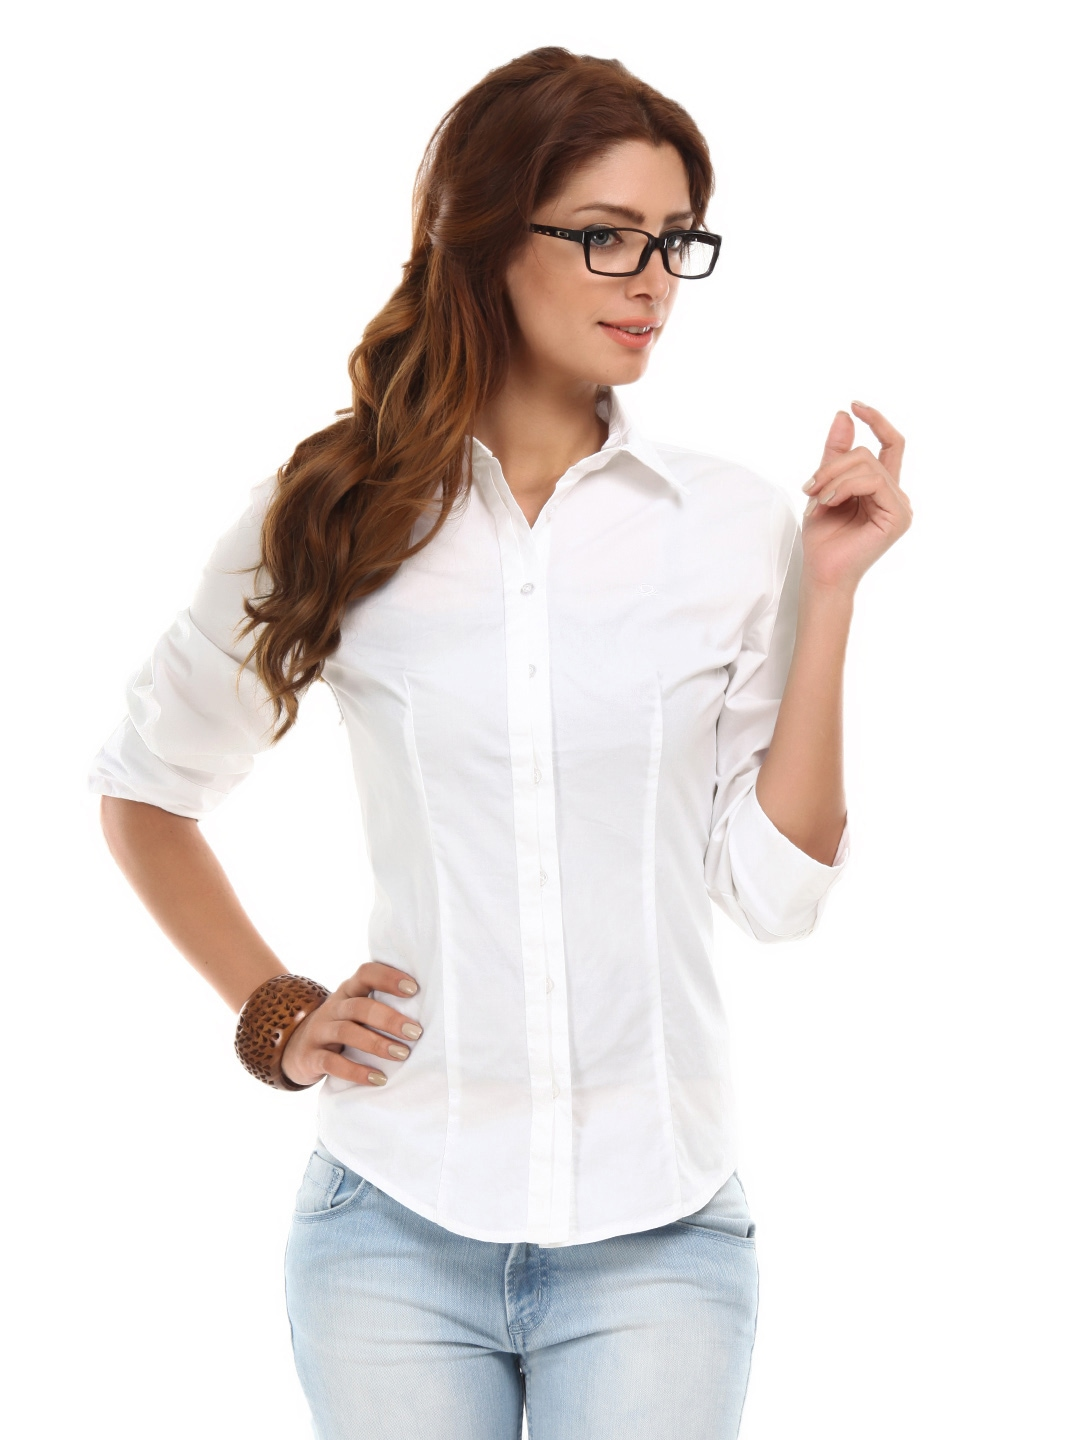 Find great deals on eBay for girls white shirt. Shop with confidence.